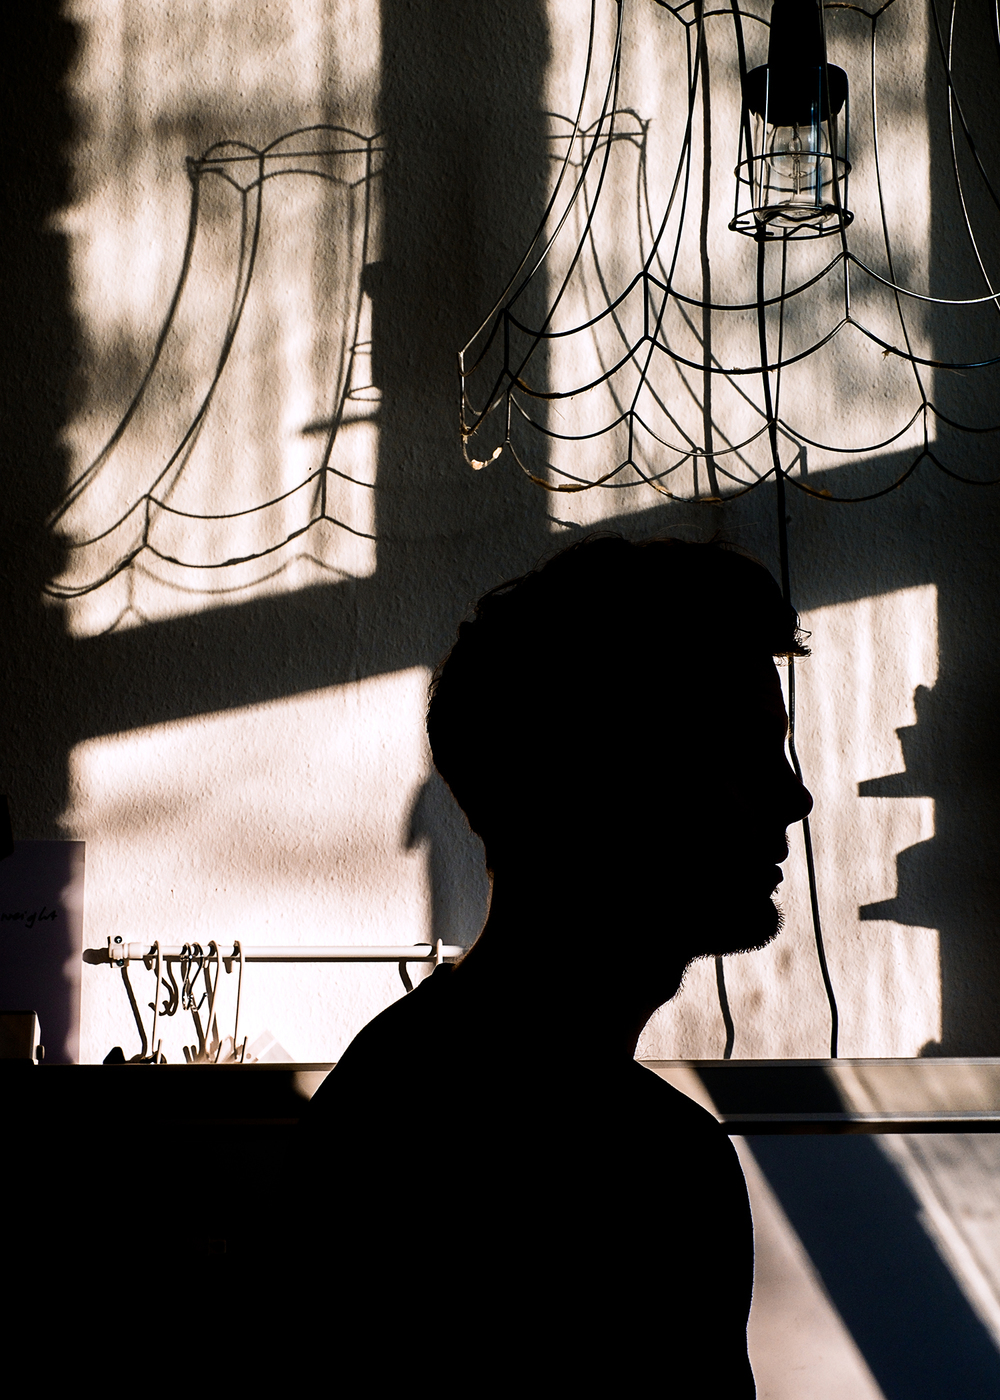 Patrick-Bremer-Profile-in-Shadow-Matthew Coleman Photography